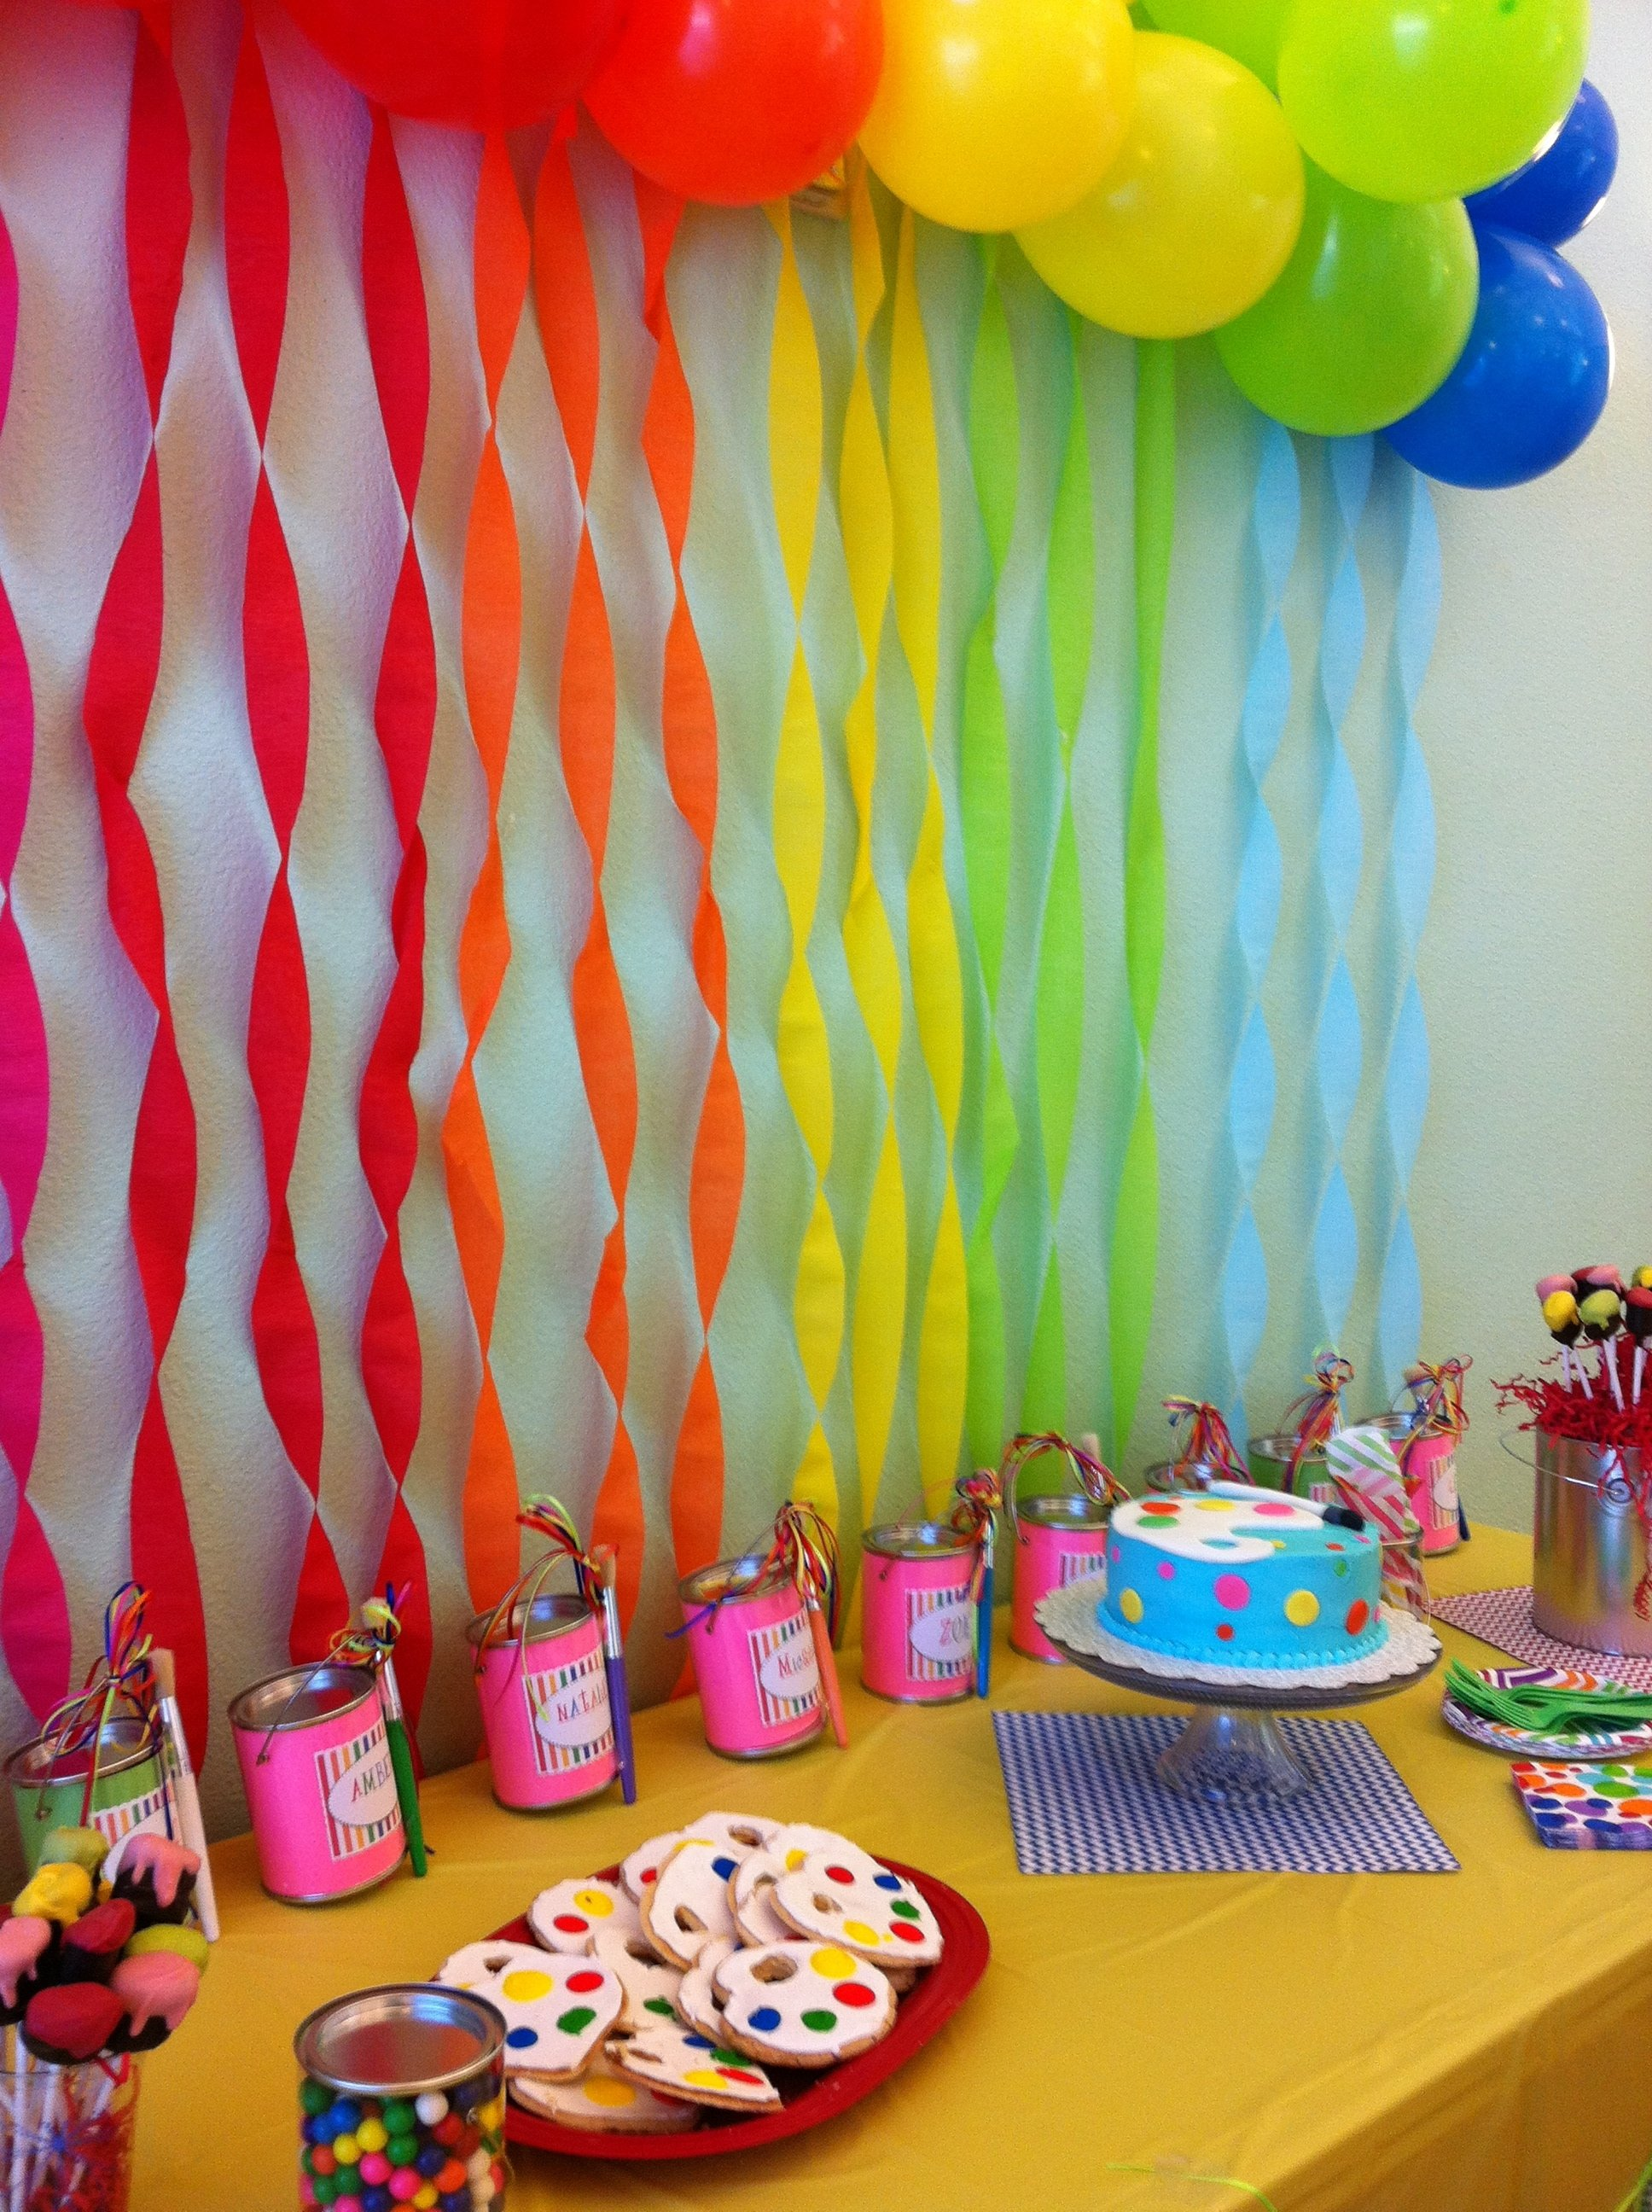 10 Unique 5 Year Old Birthday Party Ideas 8 year old girl birthday art party art party pinterest art 12 2020